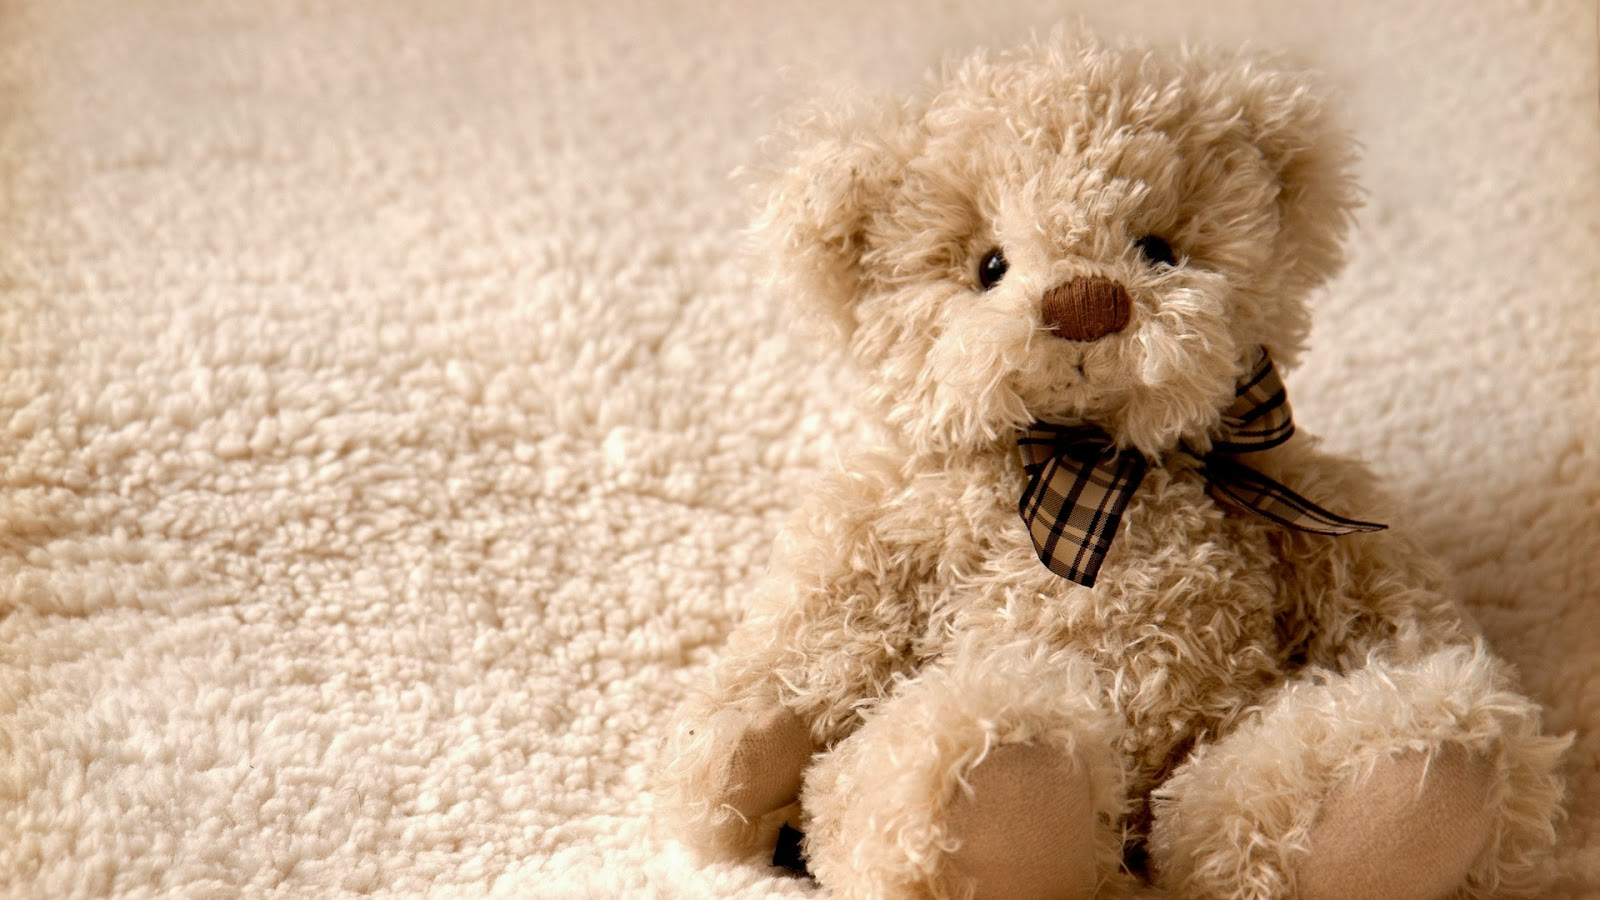 Cute Teddy Bear Pictures Hd Images Free Download Desktop 1600x900